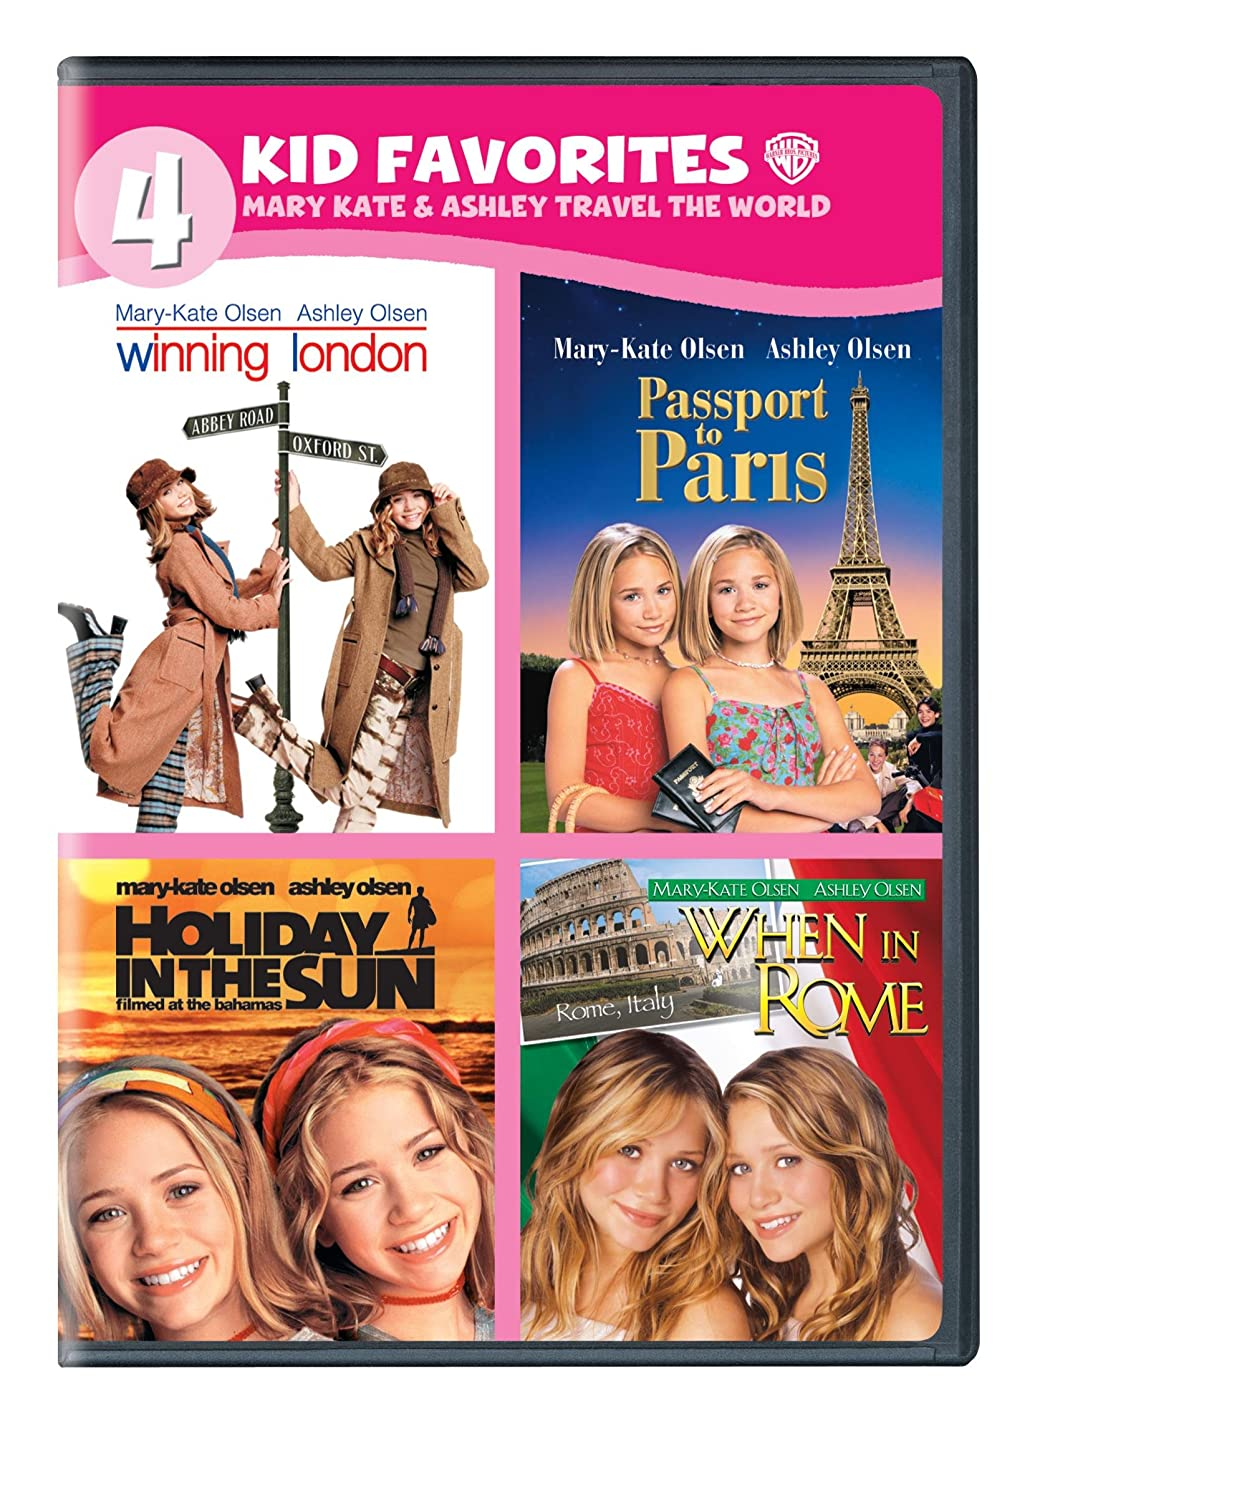 4 Kid Favorites: Mary-Kate & Ashley Travel the World Various Warner Bros. Home Video Family Movie